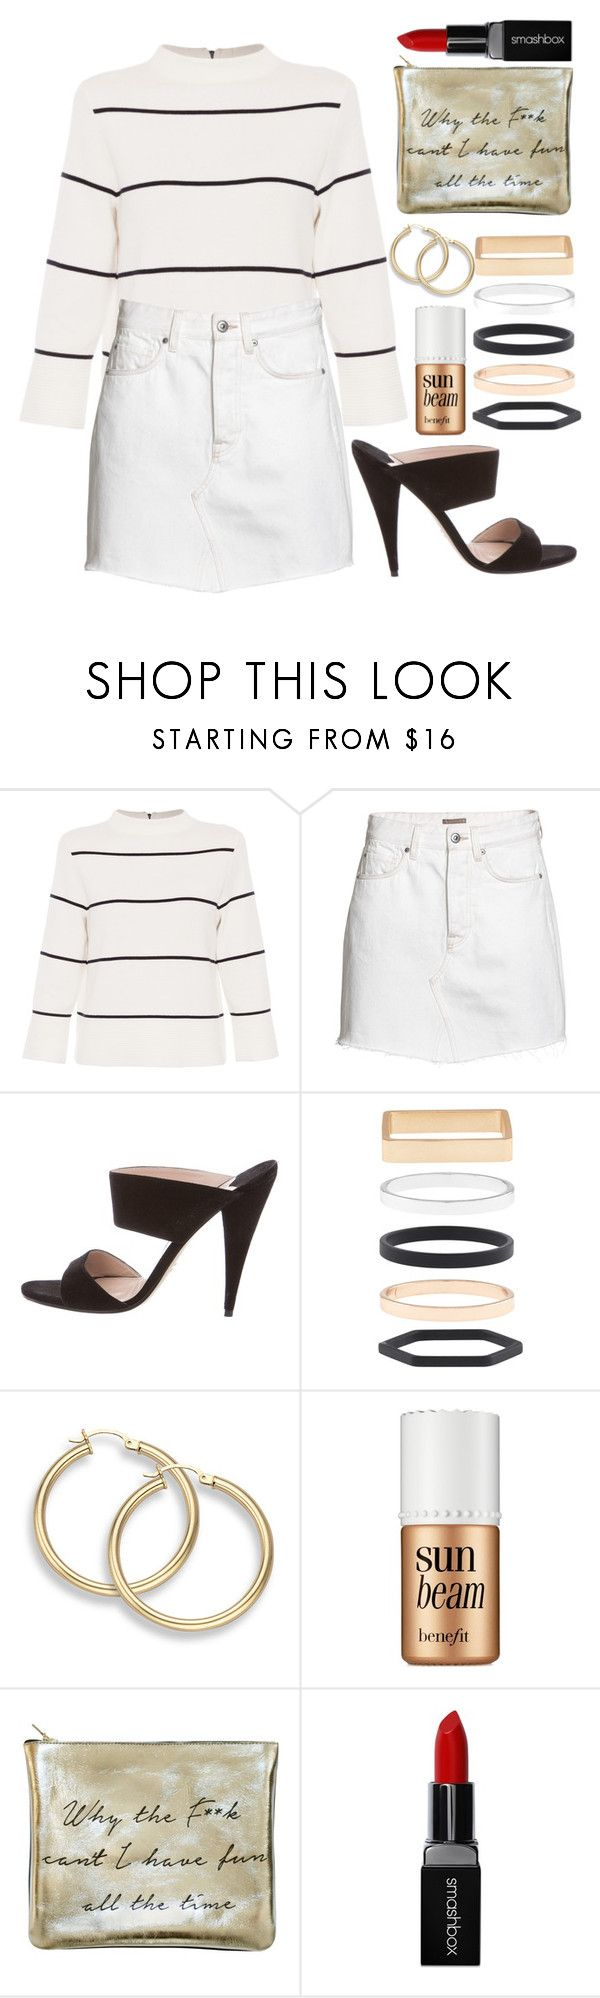 """Relax Mules"" by melisafash on Polyvore featuring L.K.Bennett, Miu Miu, Accessorize, Benefit, Sarah Baily and Smashbox"